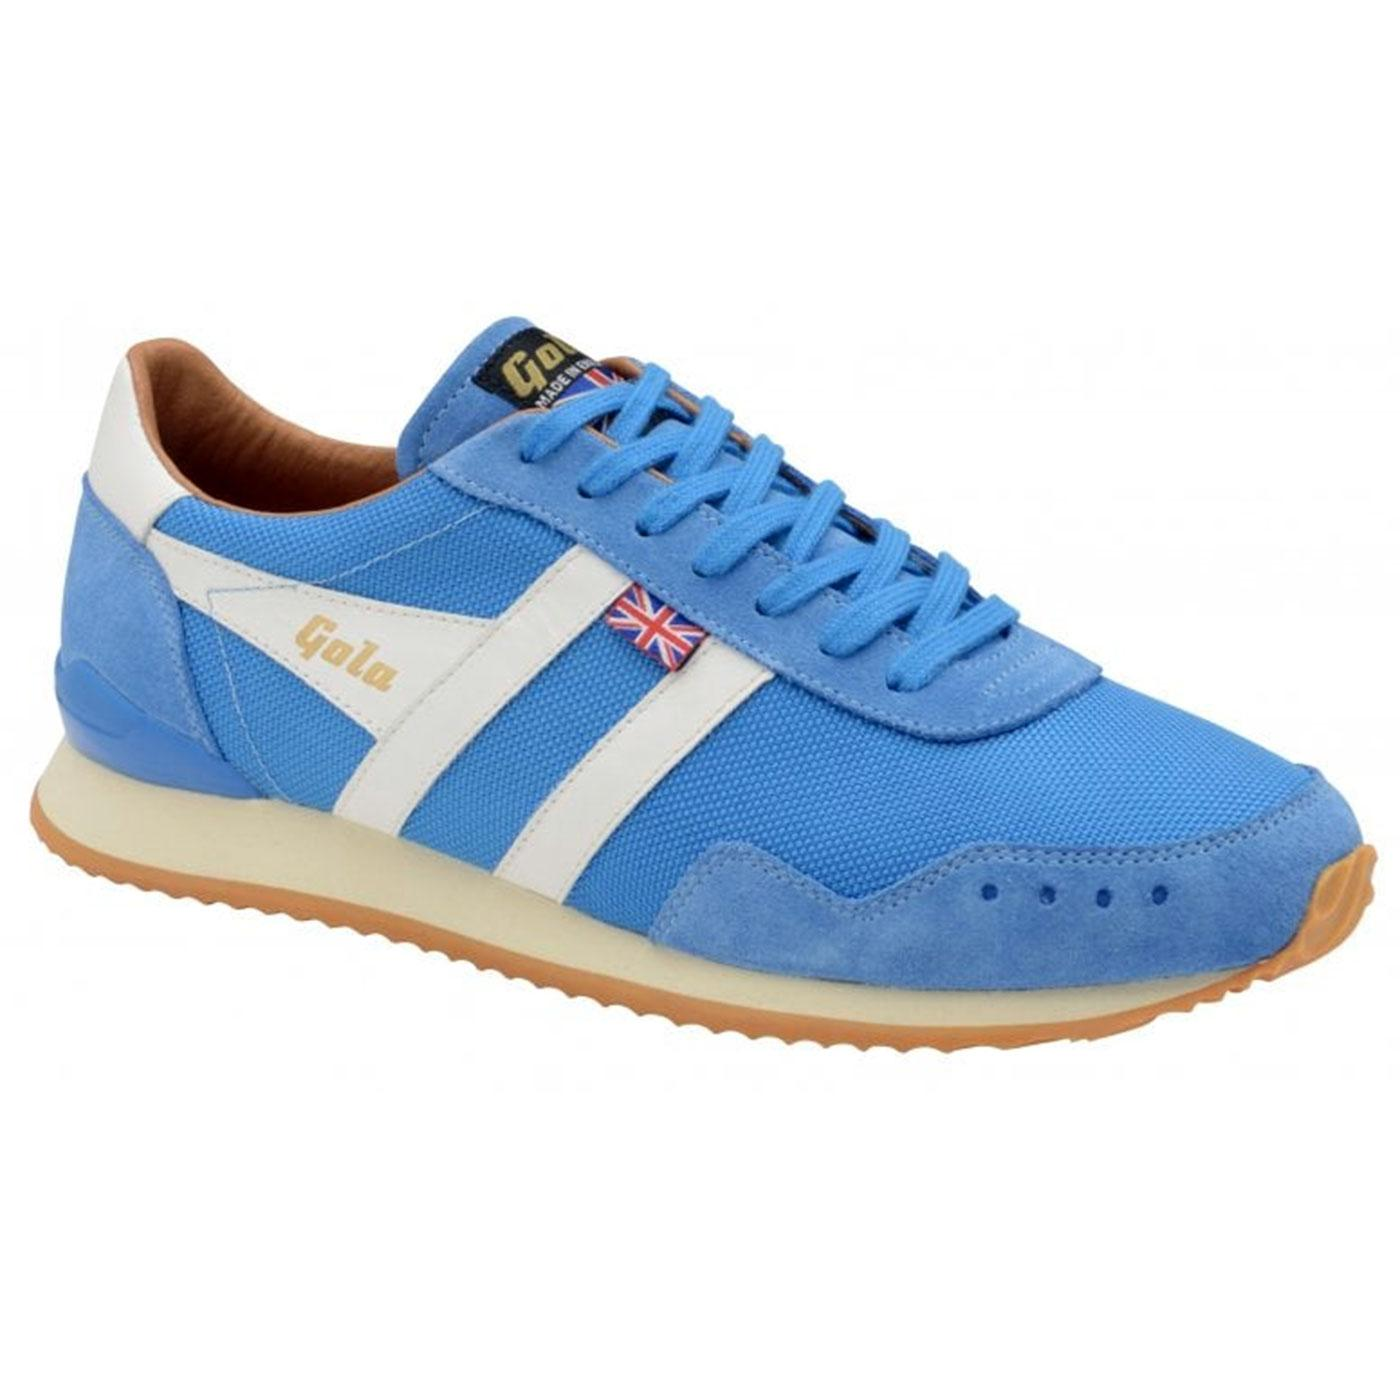 Track Mesh GOLA Made in England Trainers SANTORINI